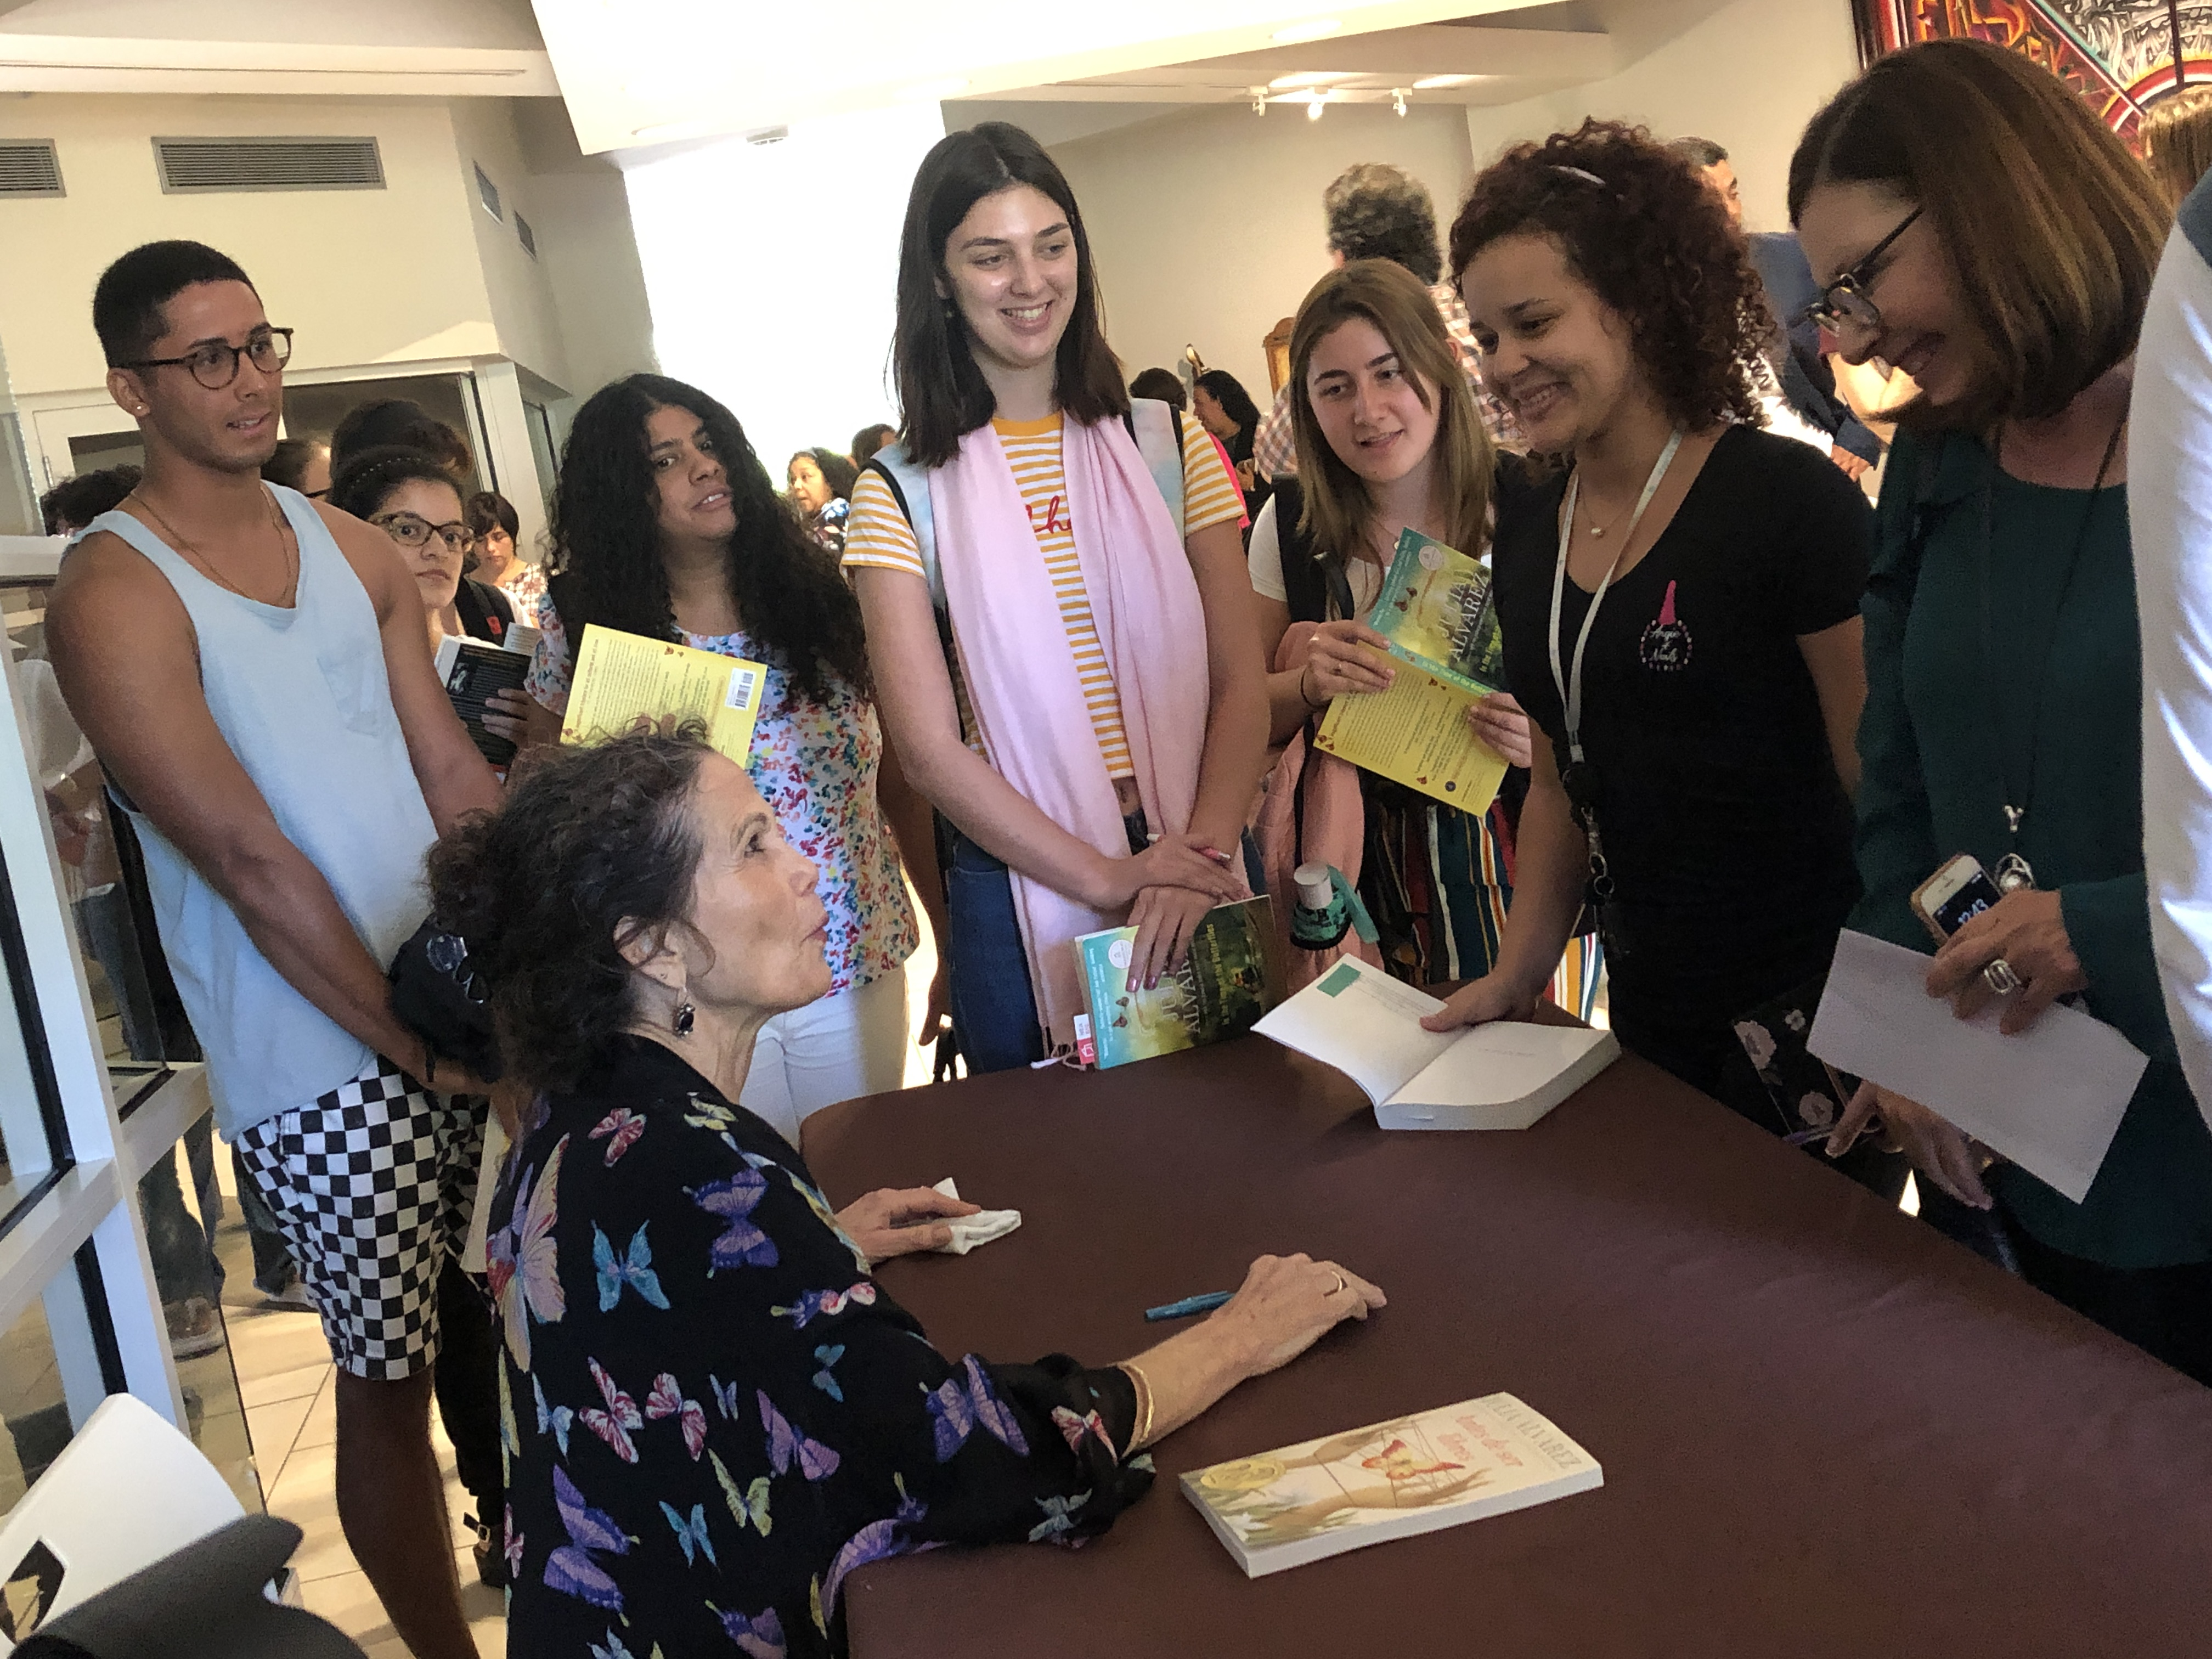 Students getting books signed by Julia Alvarez.